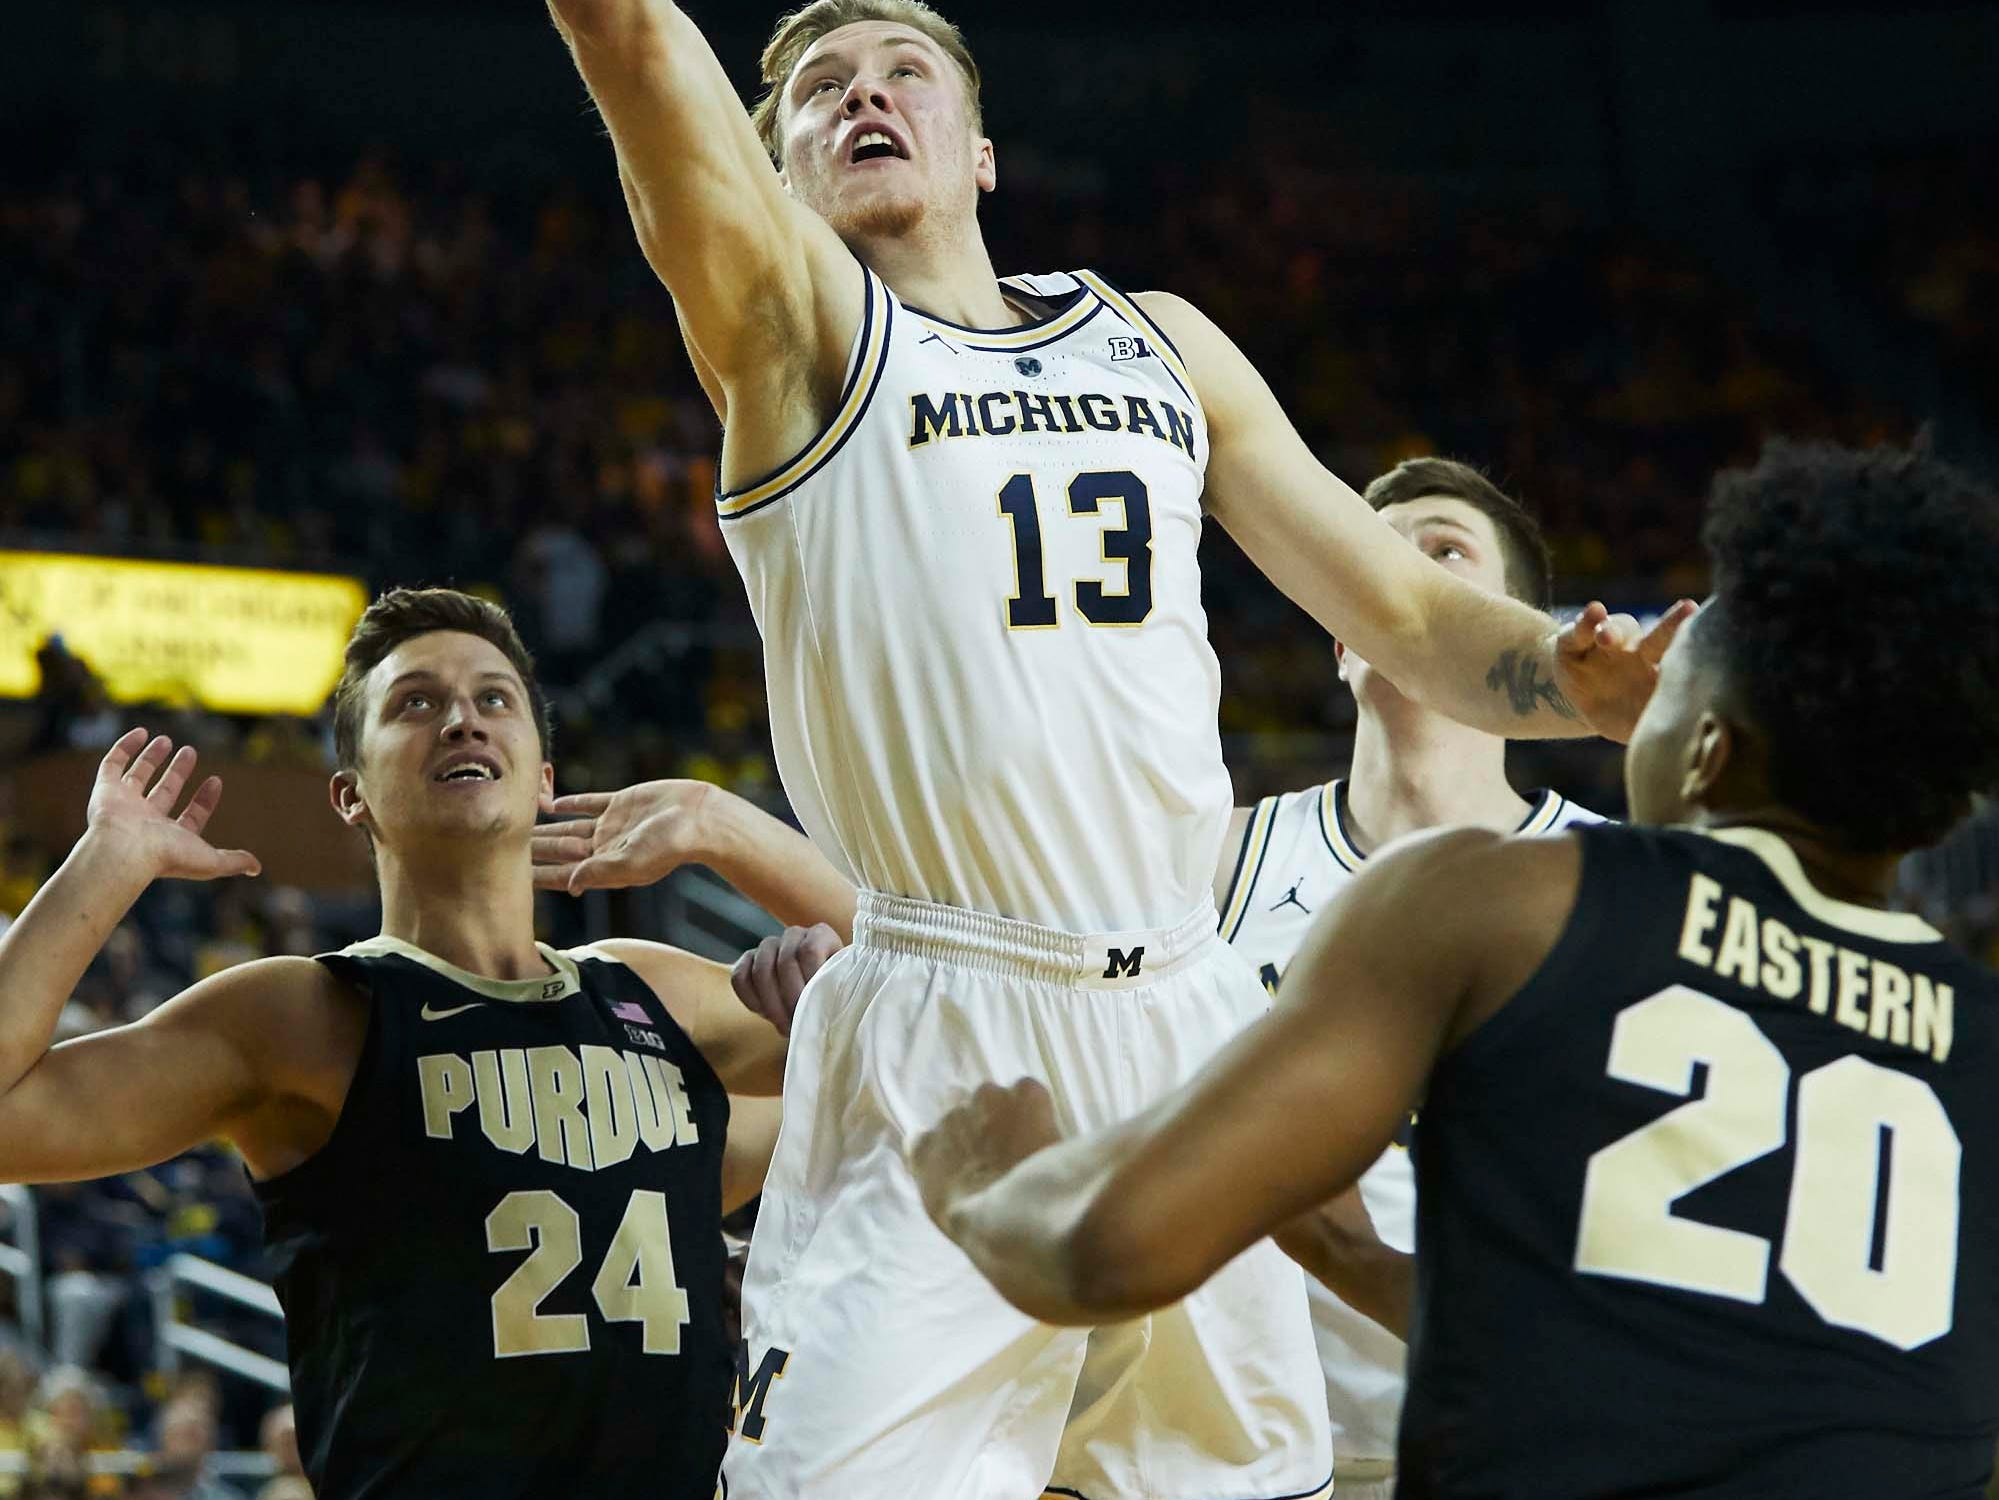 Dec 1, 2018; Ann Arbor, MI, USA; Michigan Wolverines forward Ignas Brazdeikis (13) shoots on Purdue Boilermakers guard Nojel Eastern (20) in the first half at Crisler Center. Mandatory Credit: Rick Osentoski-USA TODAY Sports